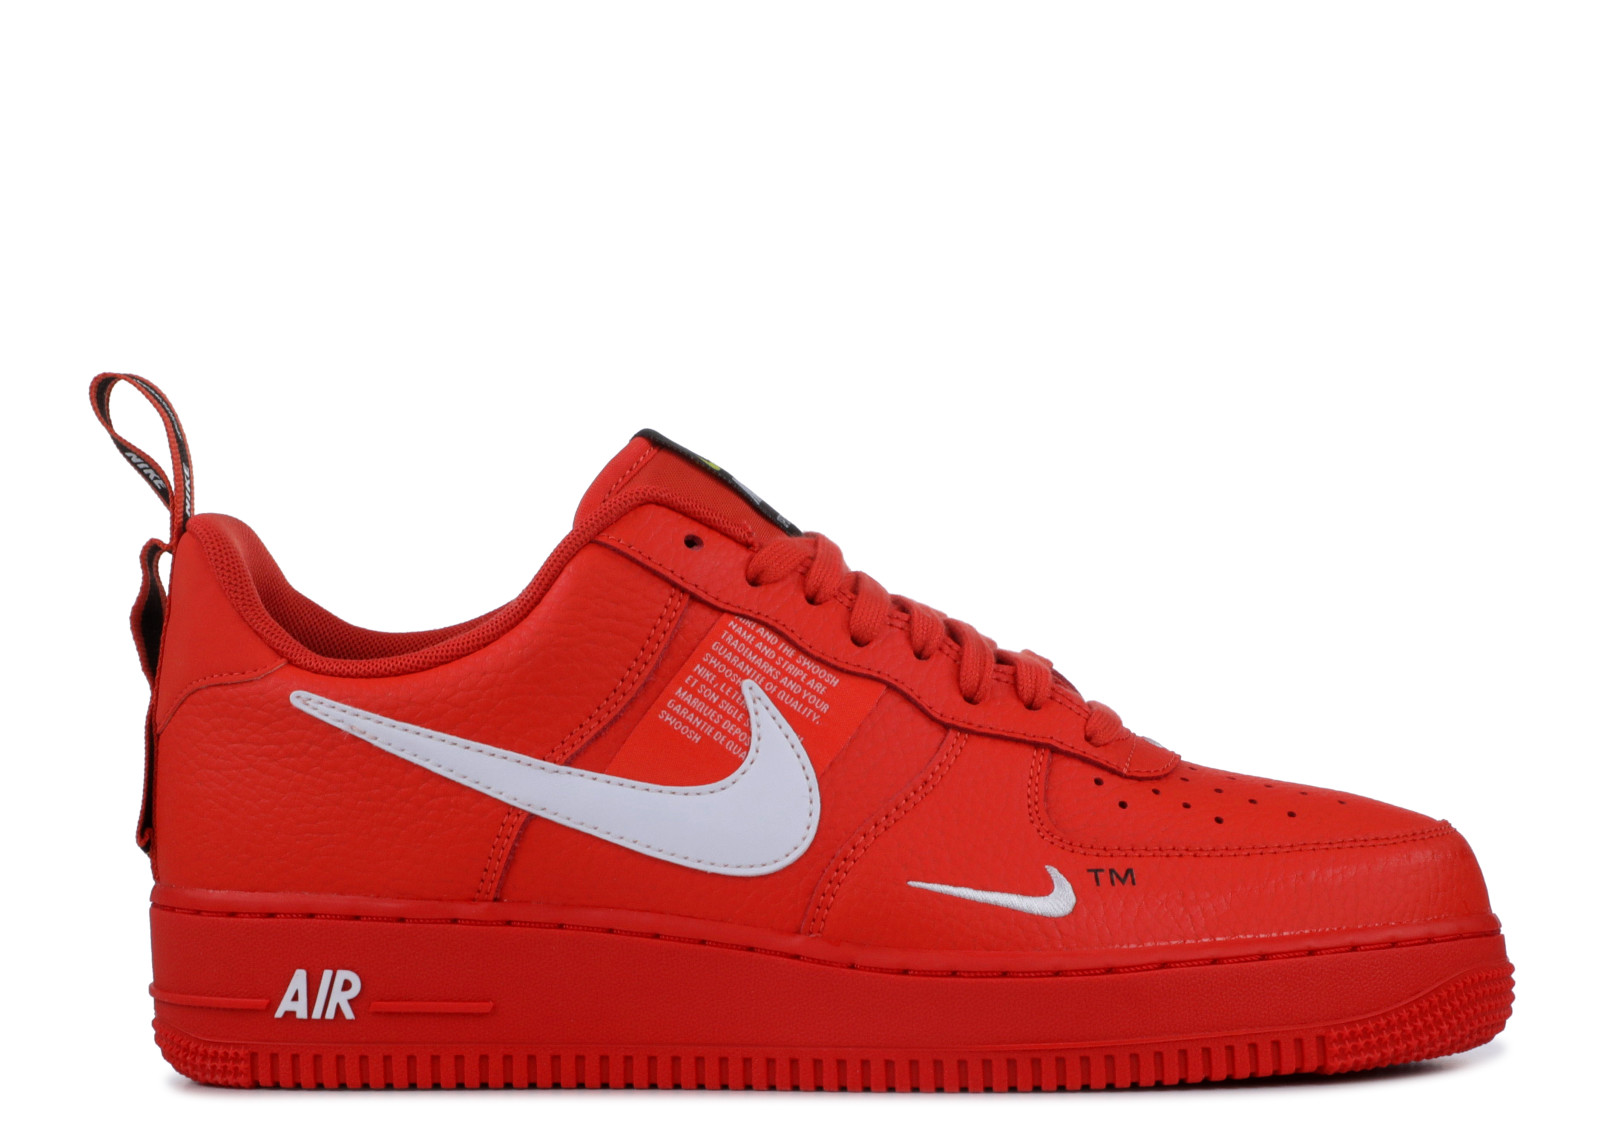 eb1871c3 Nike Air Force 1 07 Lv8 - Кроссовки Nike Air Force 1 07 Lv8